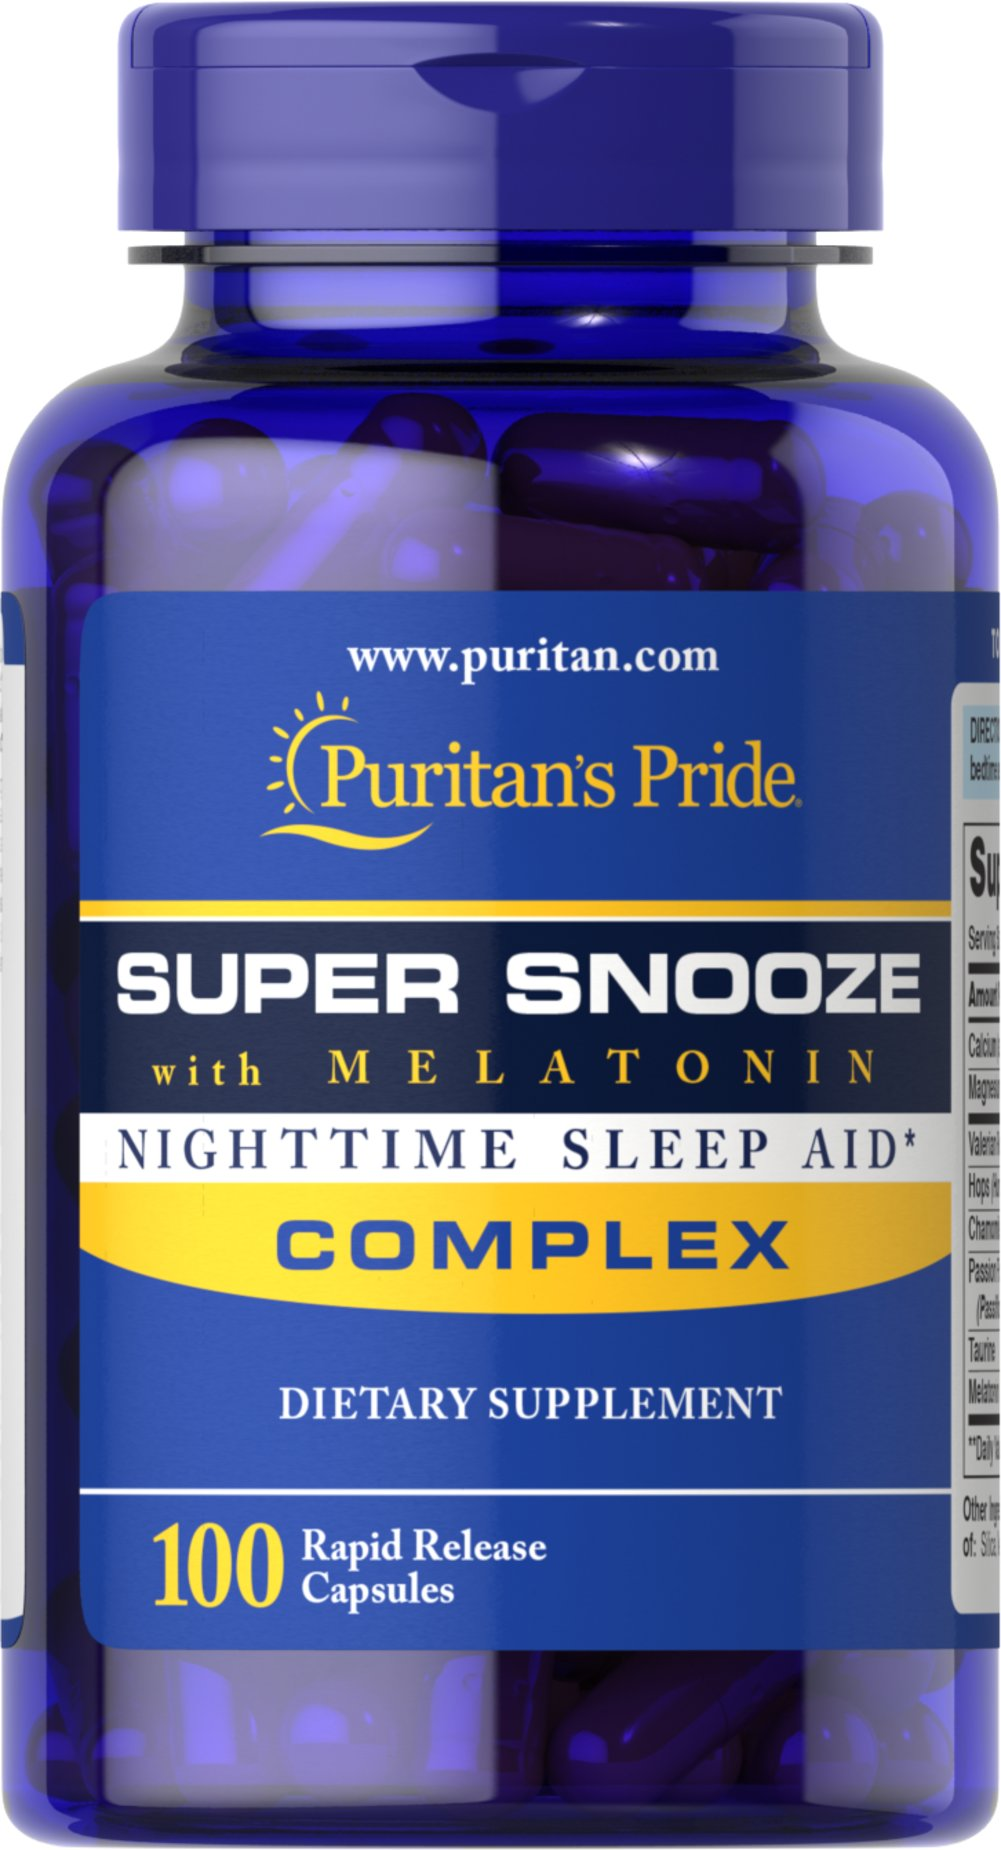 Super Snooze with Melatonin <p>Super Snooze with Melatonin works in harmony with your natural sleep cycle to give you the tranquil rest you deserve, so you can awaken feeling refreshed.** Super Snooze with Melatonin is perfect for people experiencing occasional sleeplessness, those with jet lag, or anyone seeking to improve their quality of rest.** Key ingredients include Valerian Root,  Chamomile, Passion Flower and Melatonin, among others.</p> 100 Capsules  $12.99